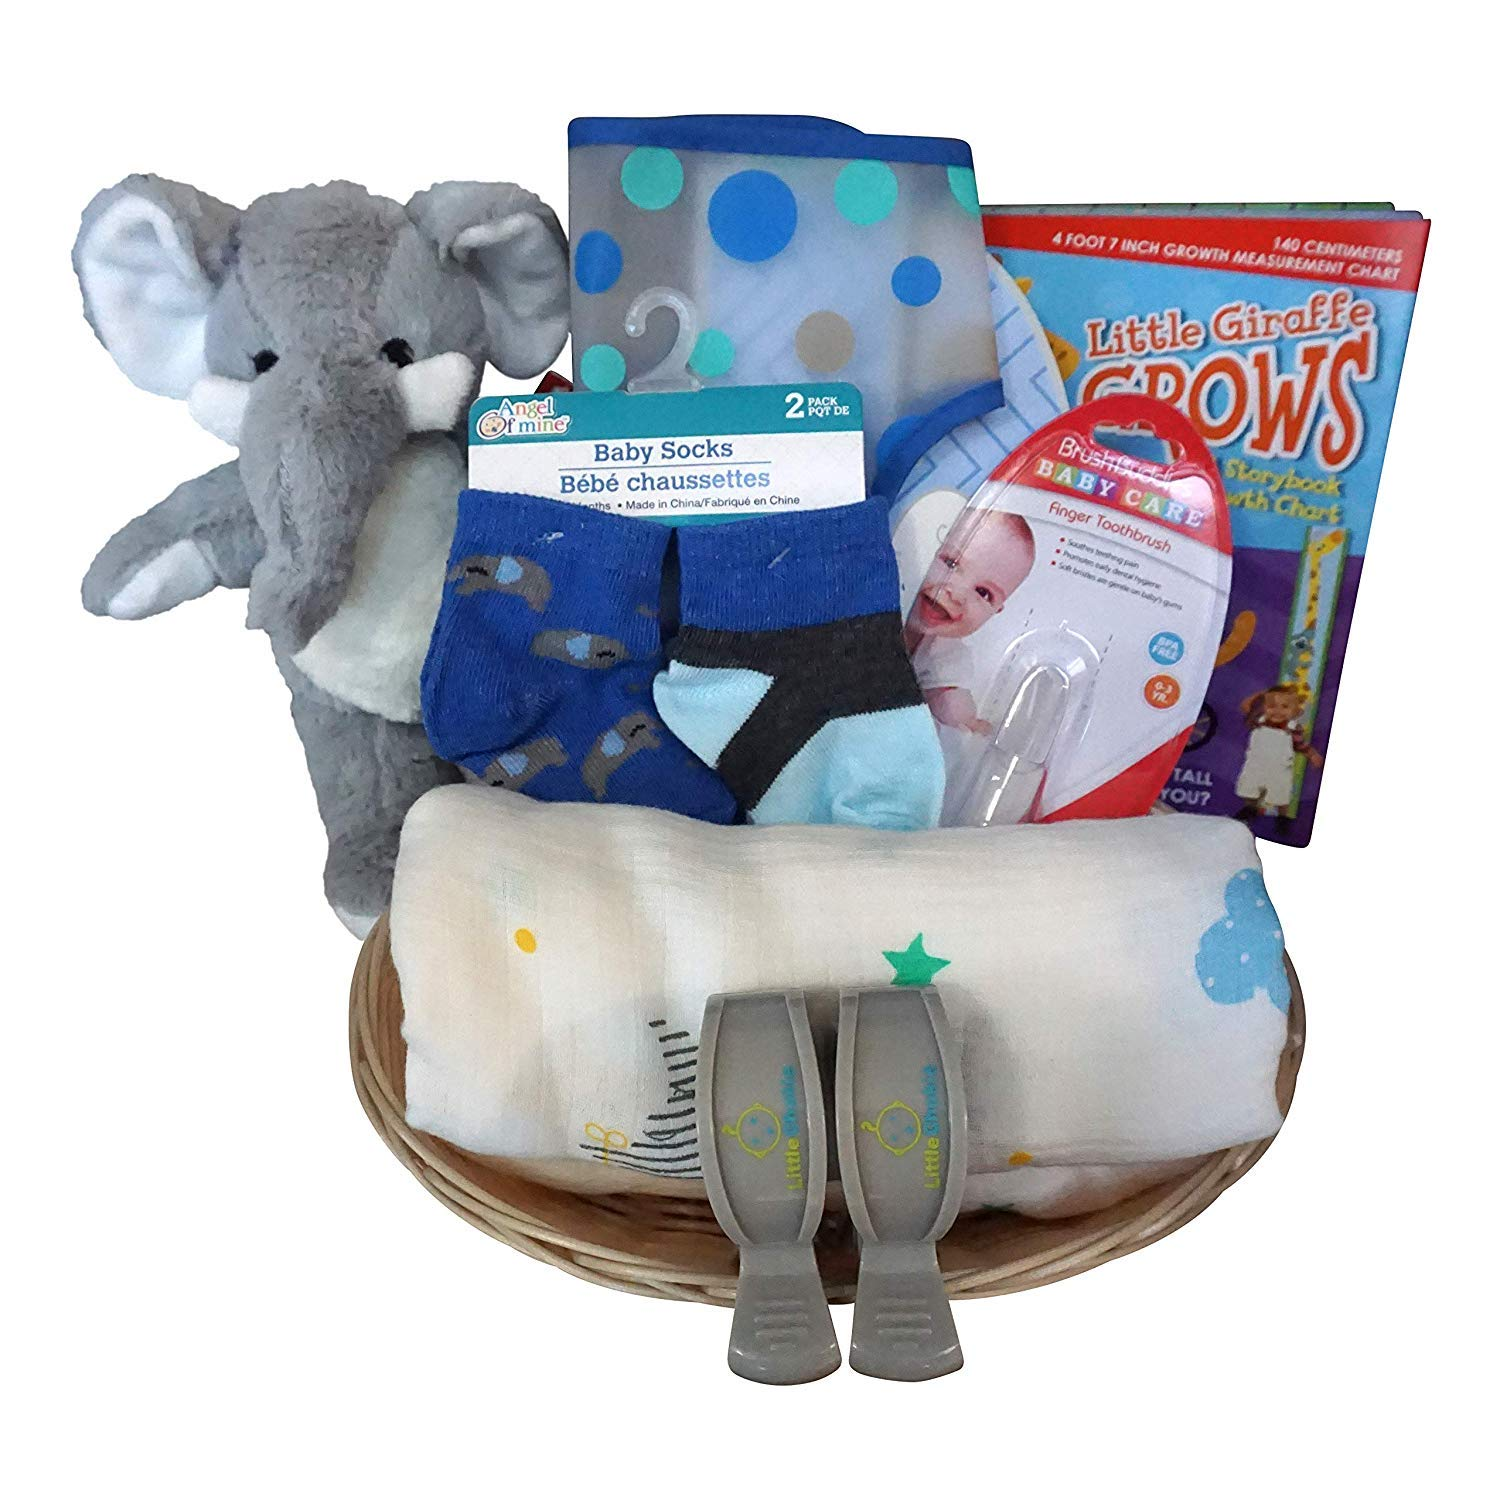 BlueElephant Elephant Baby Gift Basket for Baby Boy or Girl with Cotton Blanket Growth Chart Socks